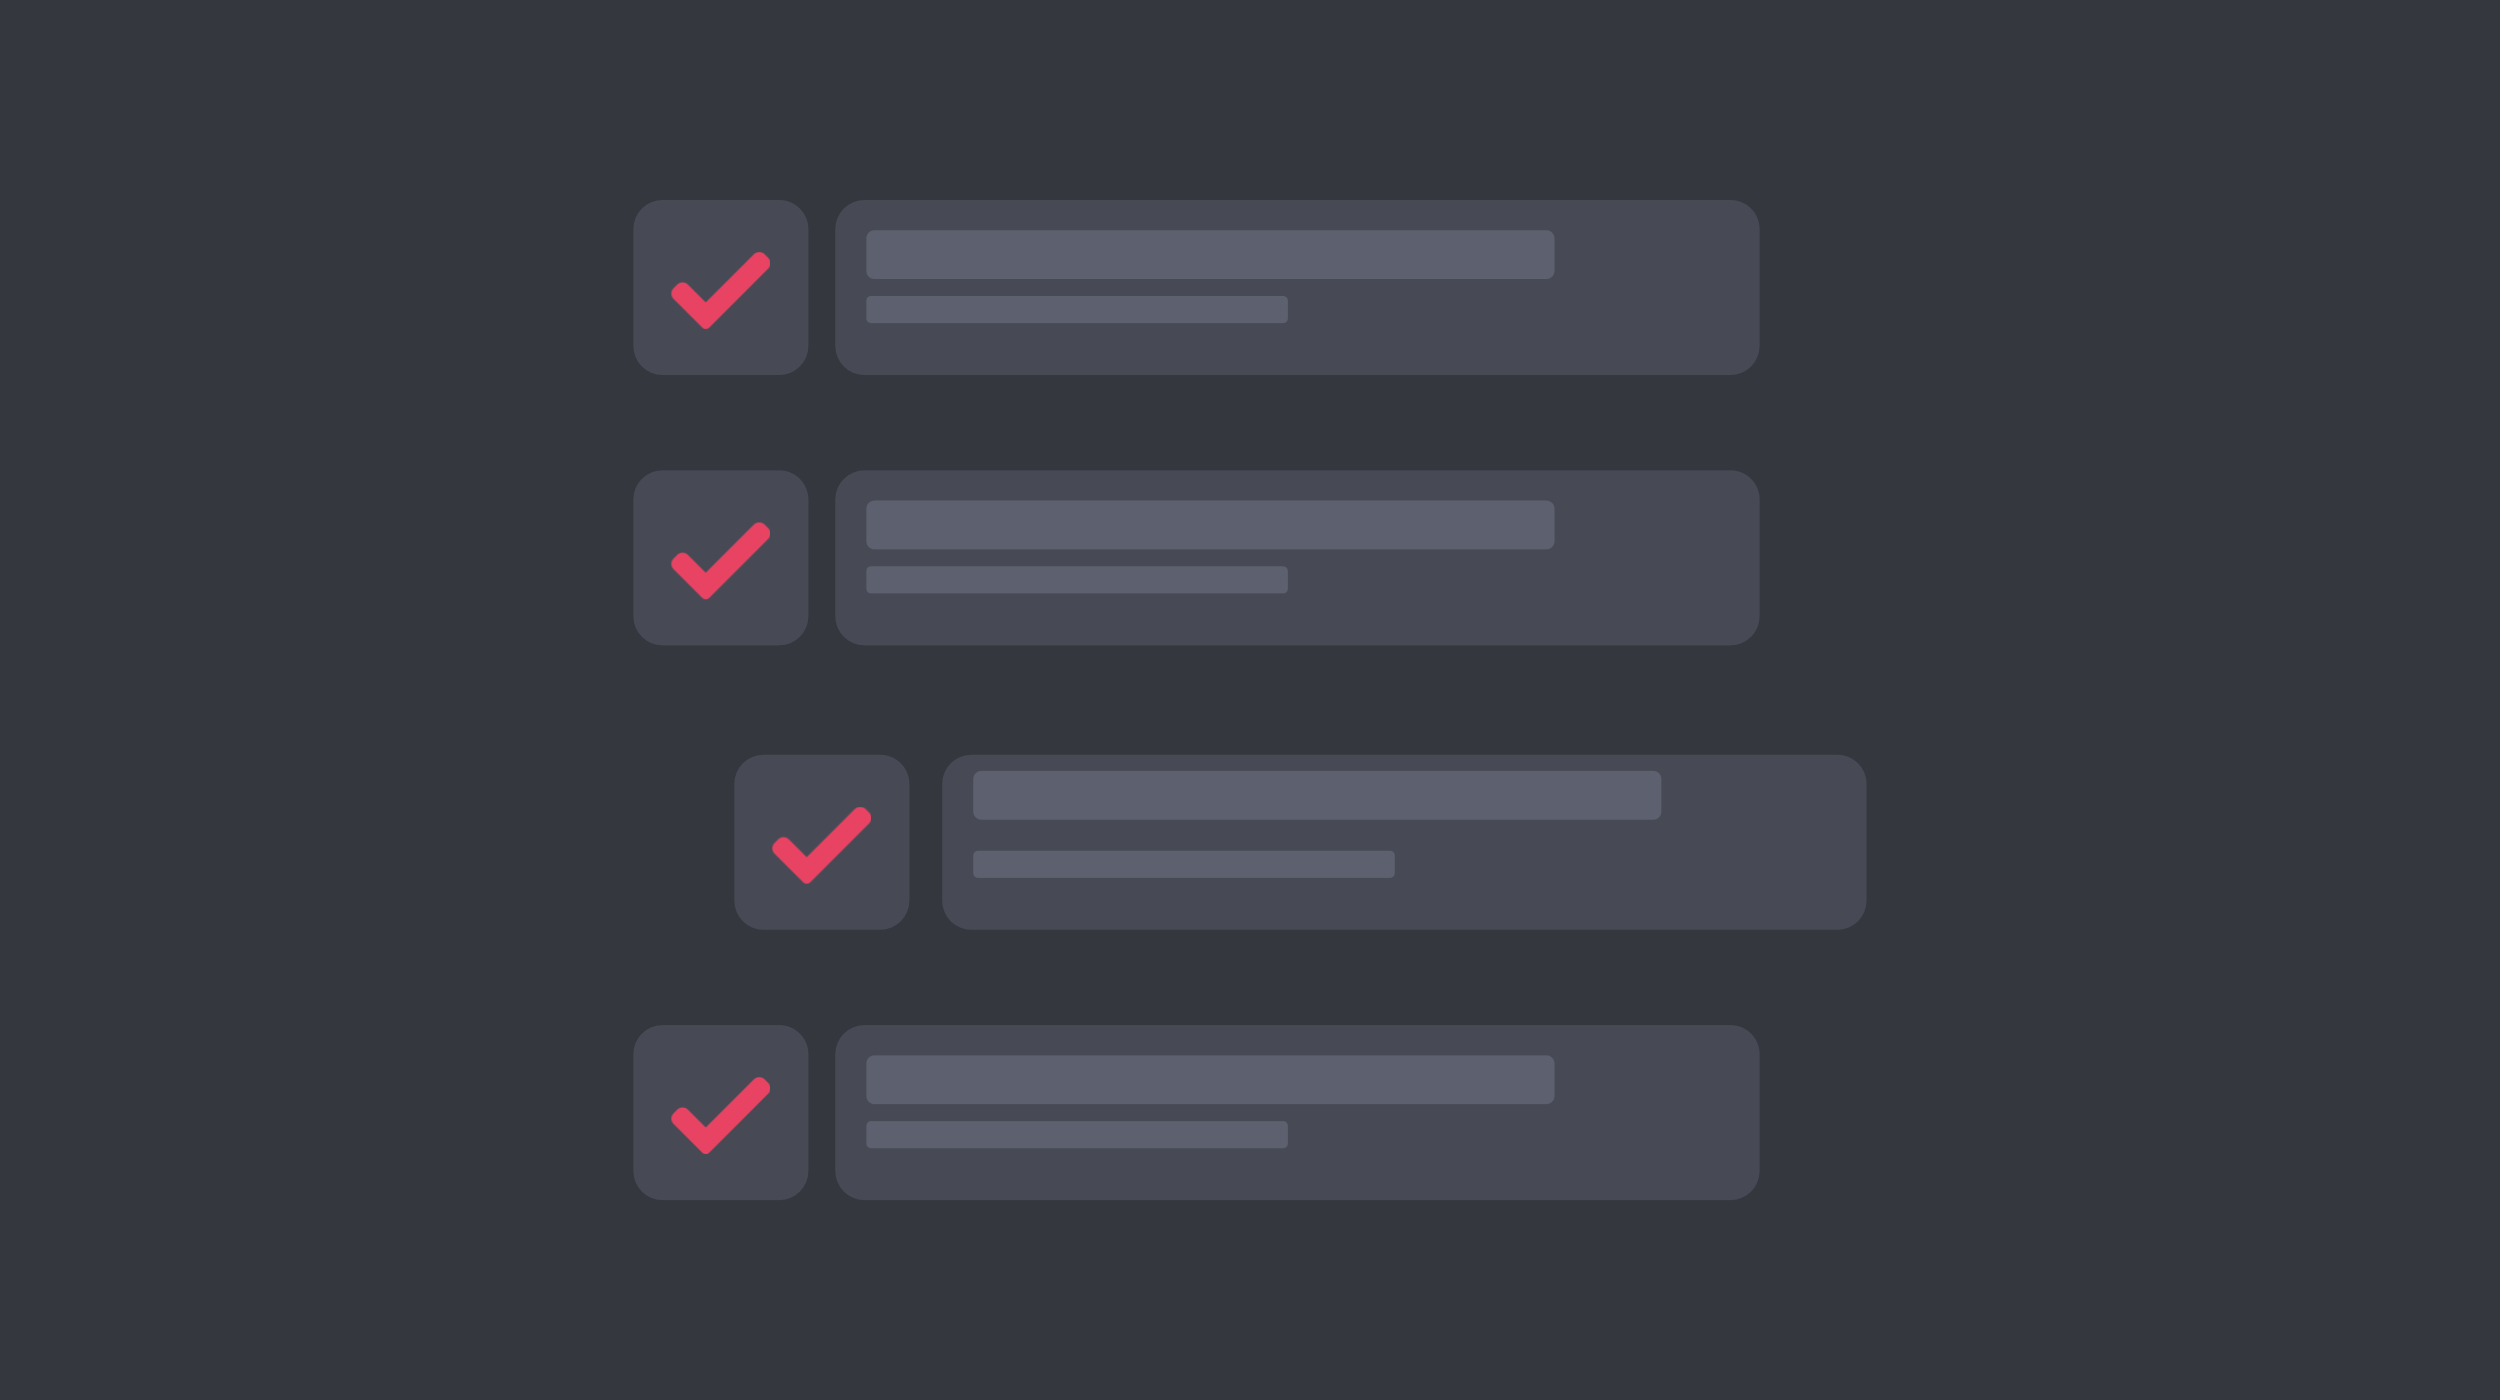 Share Your Product Roadmap